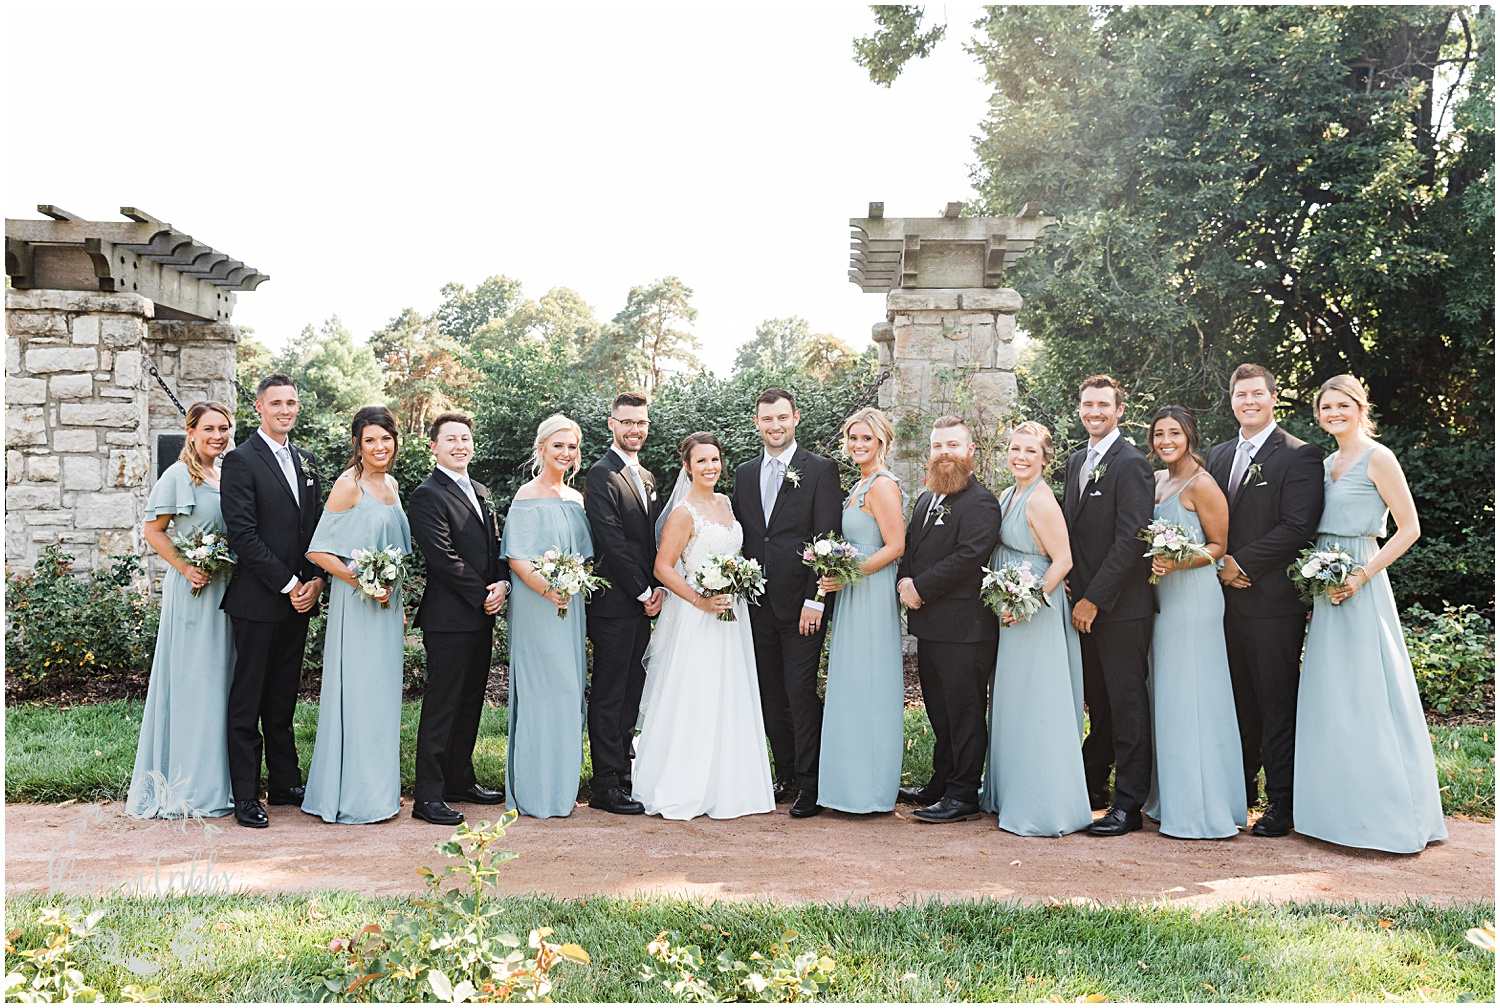 KELLY & MITCH MARRIED BLOG | MARISSA CRIBBS PHOTOGRAPHY | THE EVERLY EVENT SPACE_8861.jpg